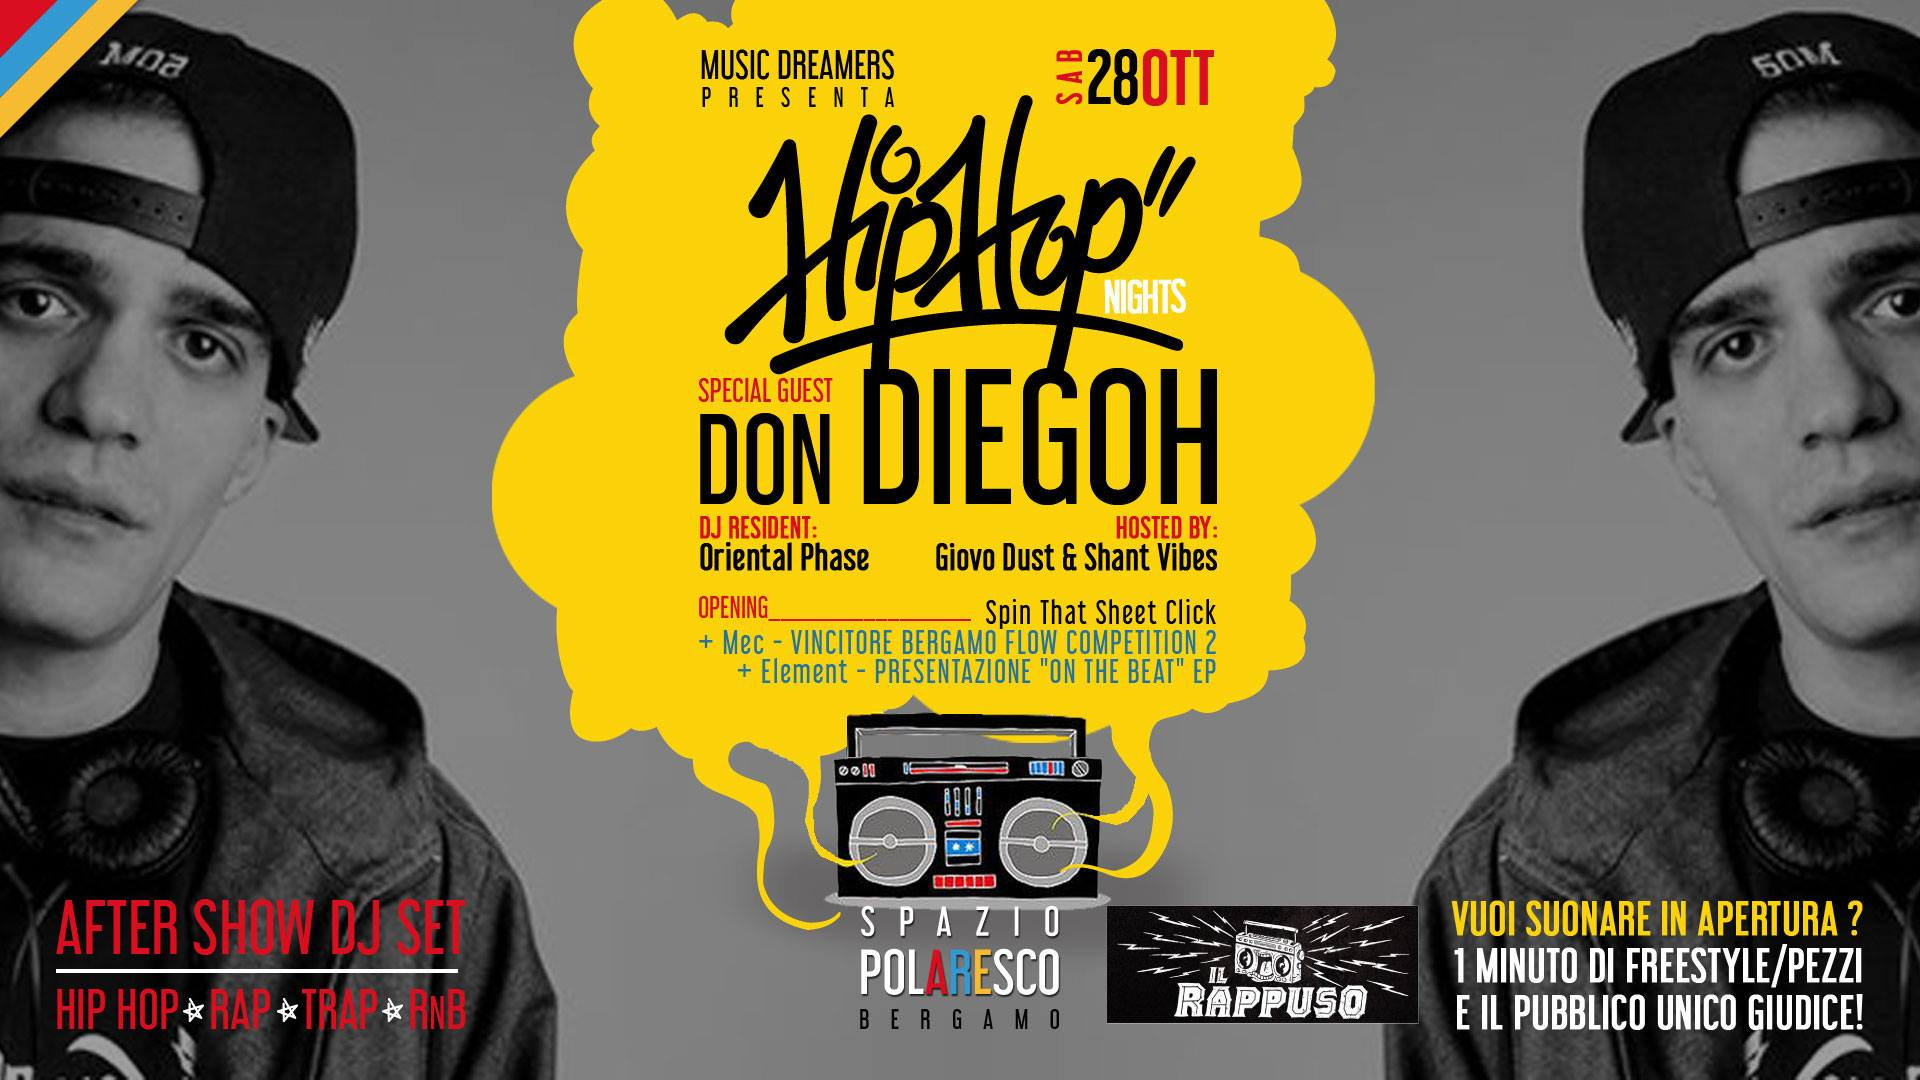 Photo of Il Rappuso in collaborazione con Music Dreamers presenta Hip Hop Night Bergamo Don Diegoh